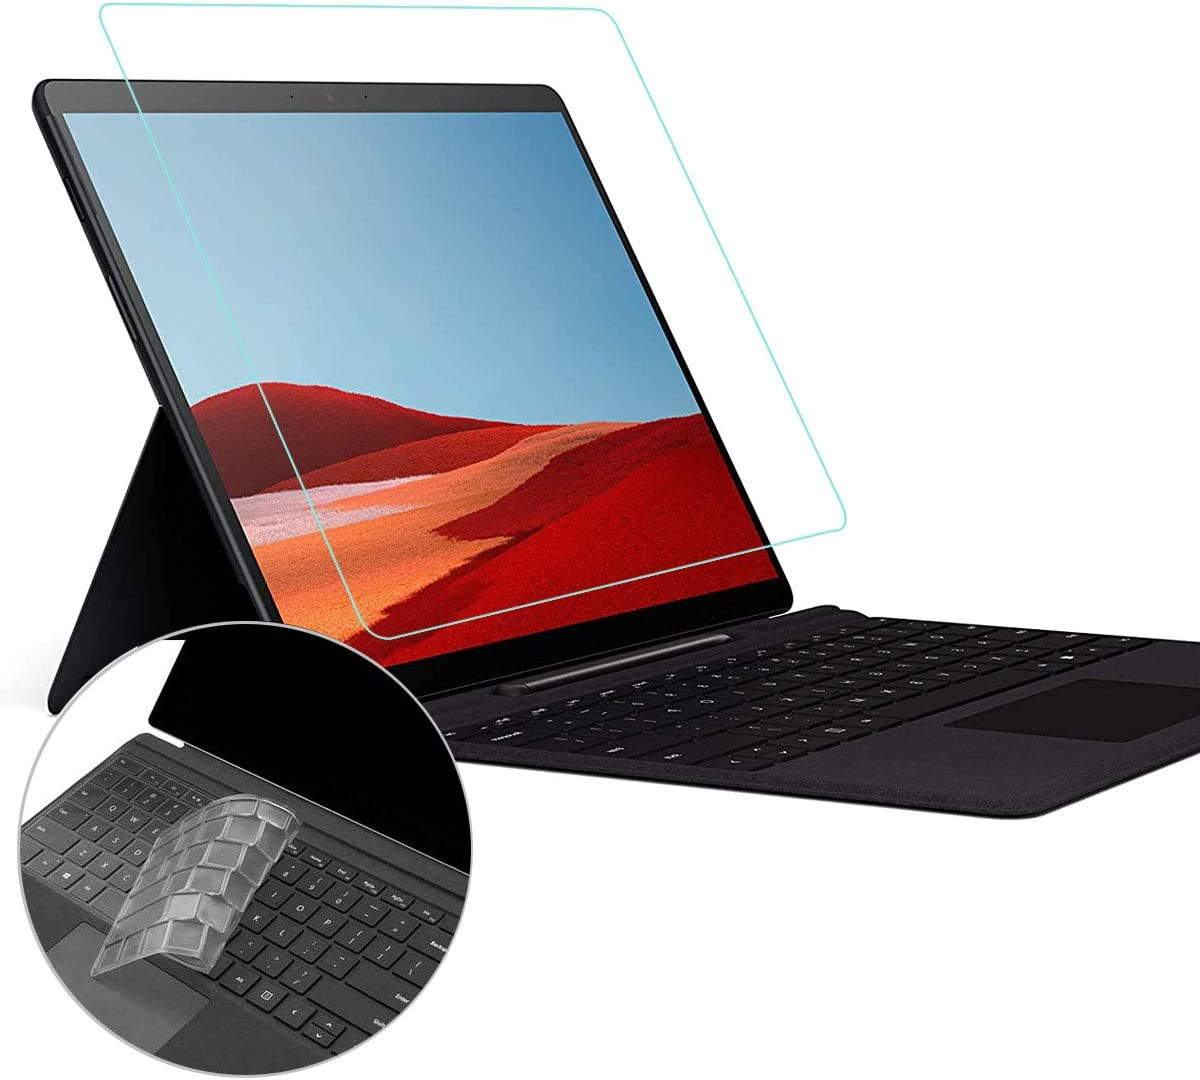 """AntiBlueLight Anti Glare Screen Protector Fit Microsoft Surface Pro 7 6/Surface Pro (5th Gen)/Surface Pro 4 12.3"""" Computer Tablet with Gift Keyboard Cover, Reduces Eye Strain Block UV and Reduce Fingerprint"""